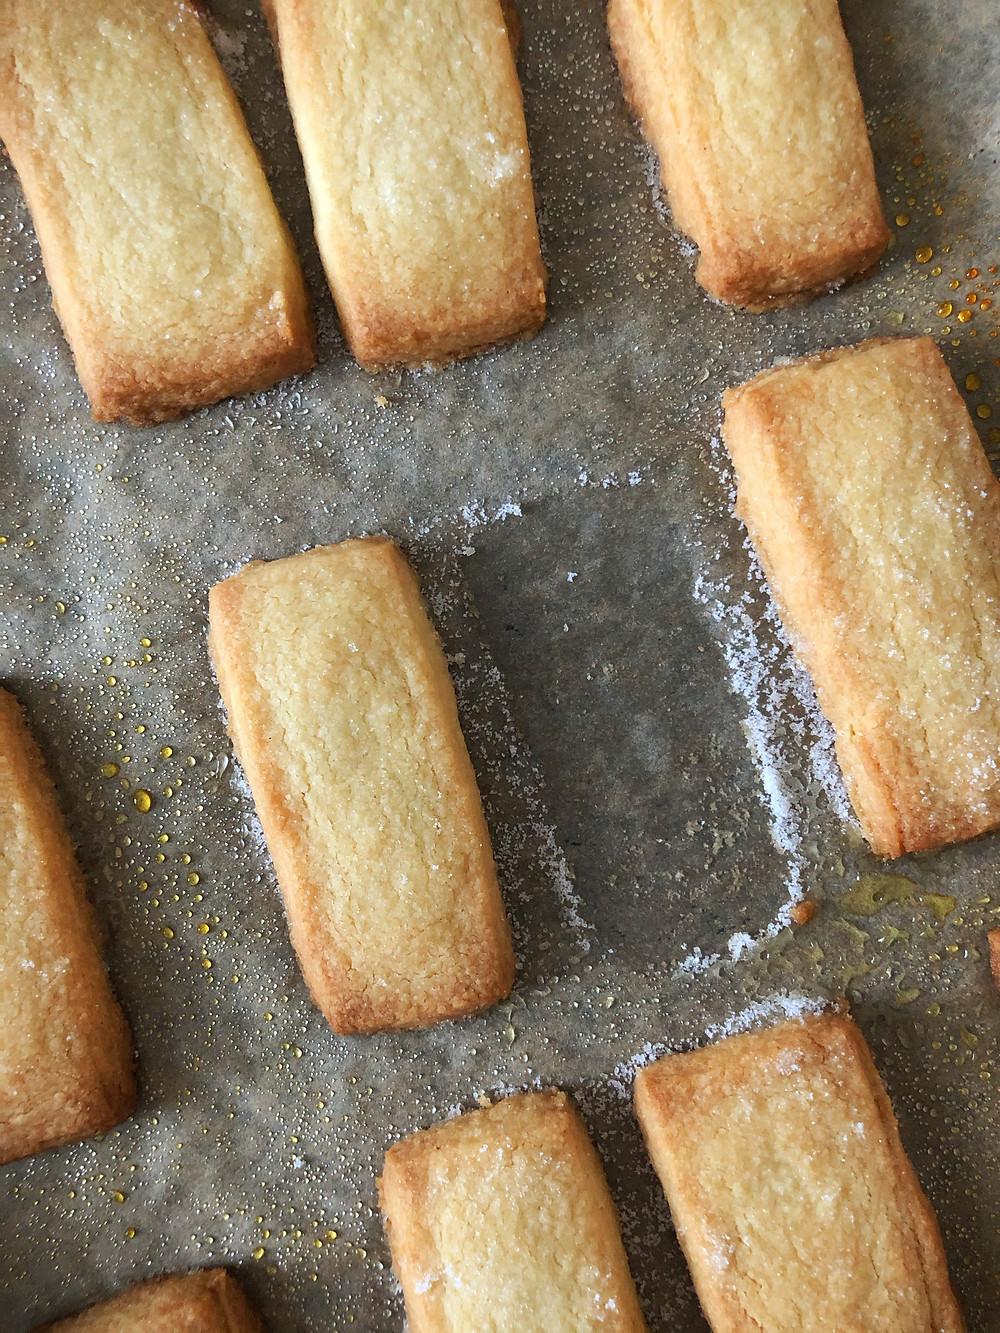 Shortbread biscuits cooked on a baking tray